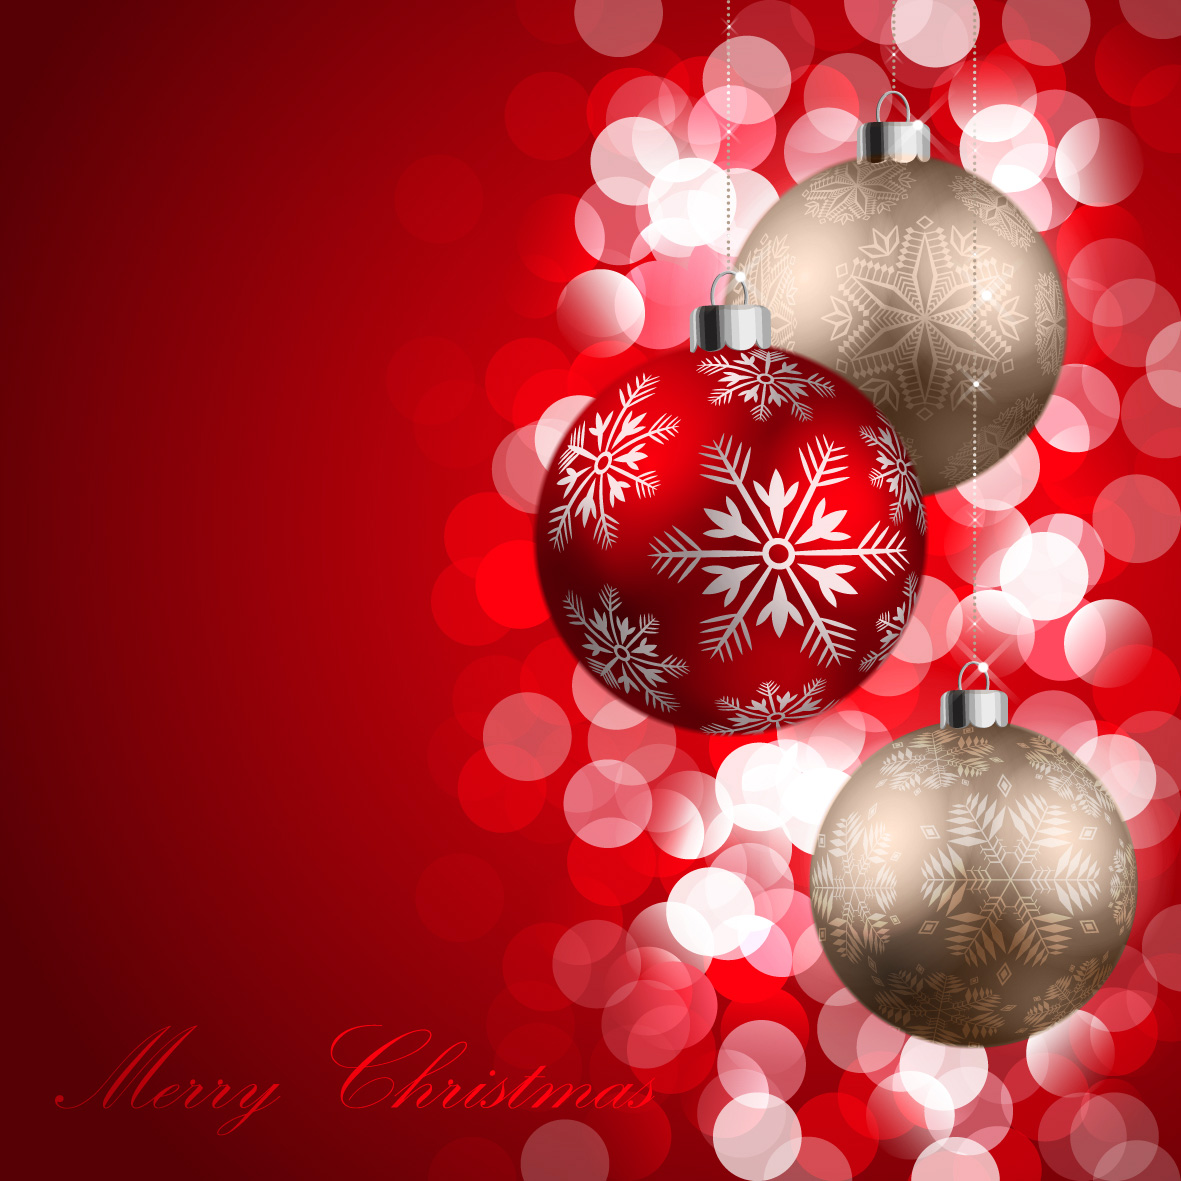 Christmas merry red background clipart png transparent Merry Christmas Red Background with Ornaments | Gallery ... png transparent